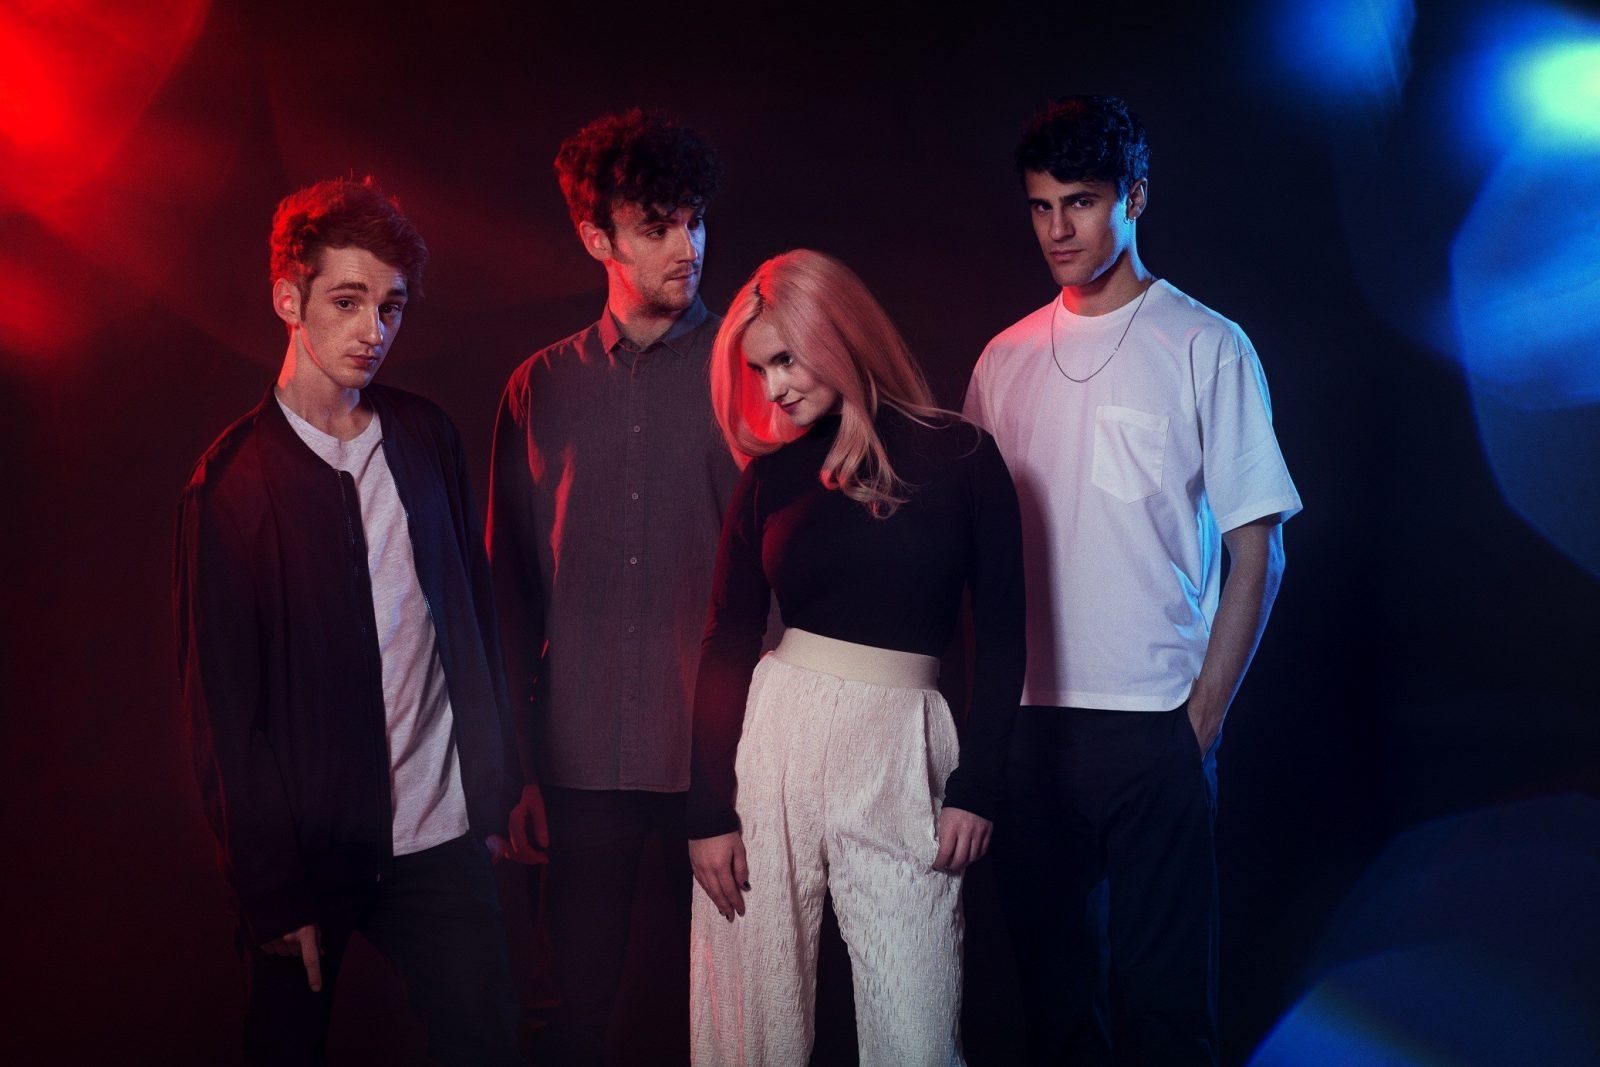 clean-bandit-april-2014-1.jpeg